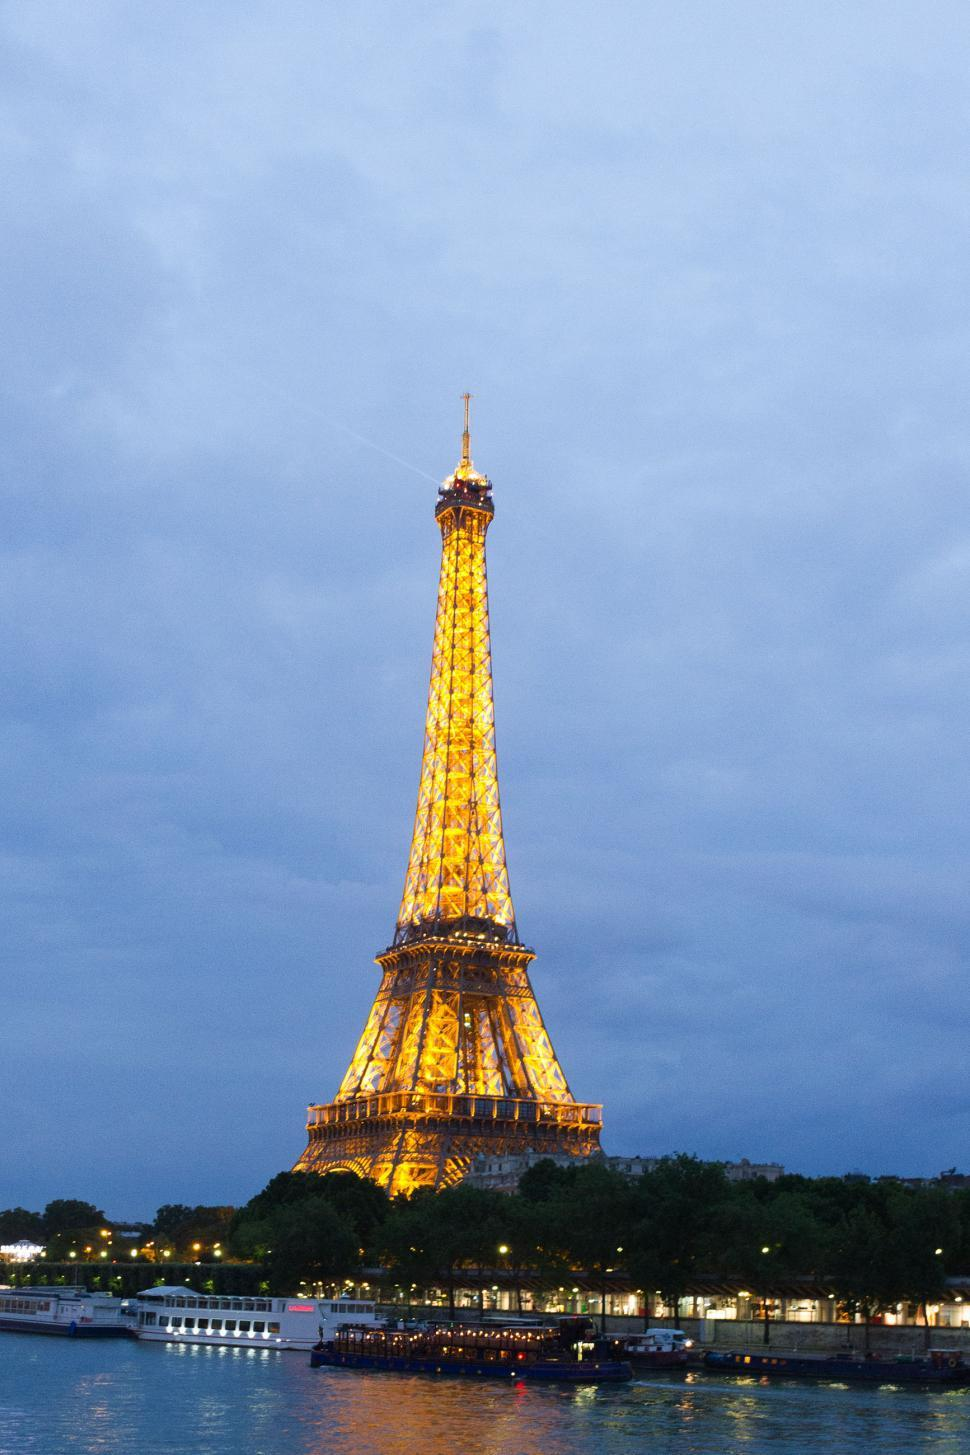 Download Free Stock HD Photo of Eiffel Tower at night Online